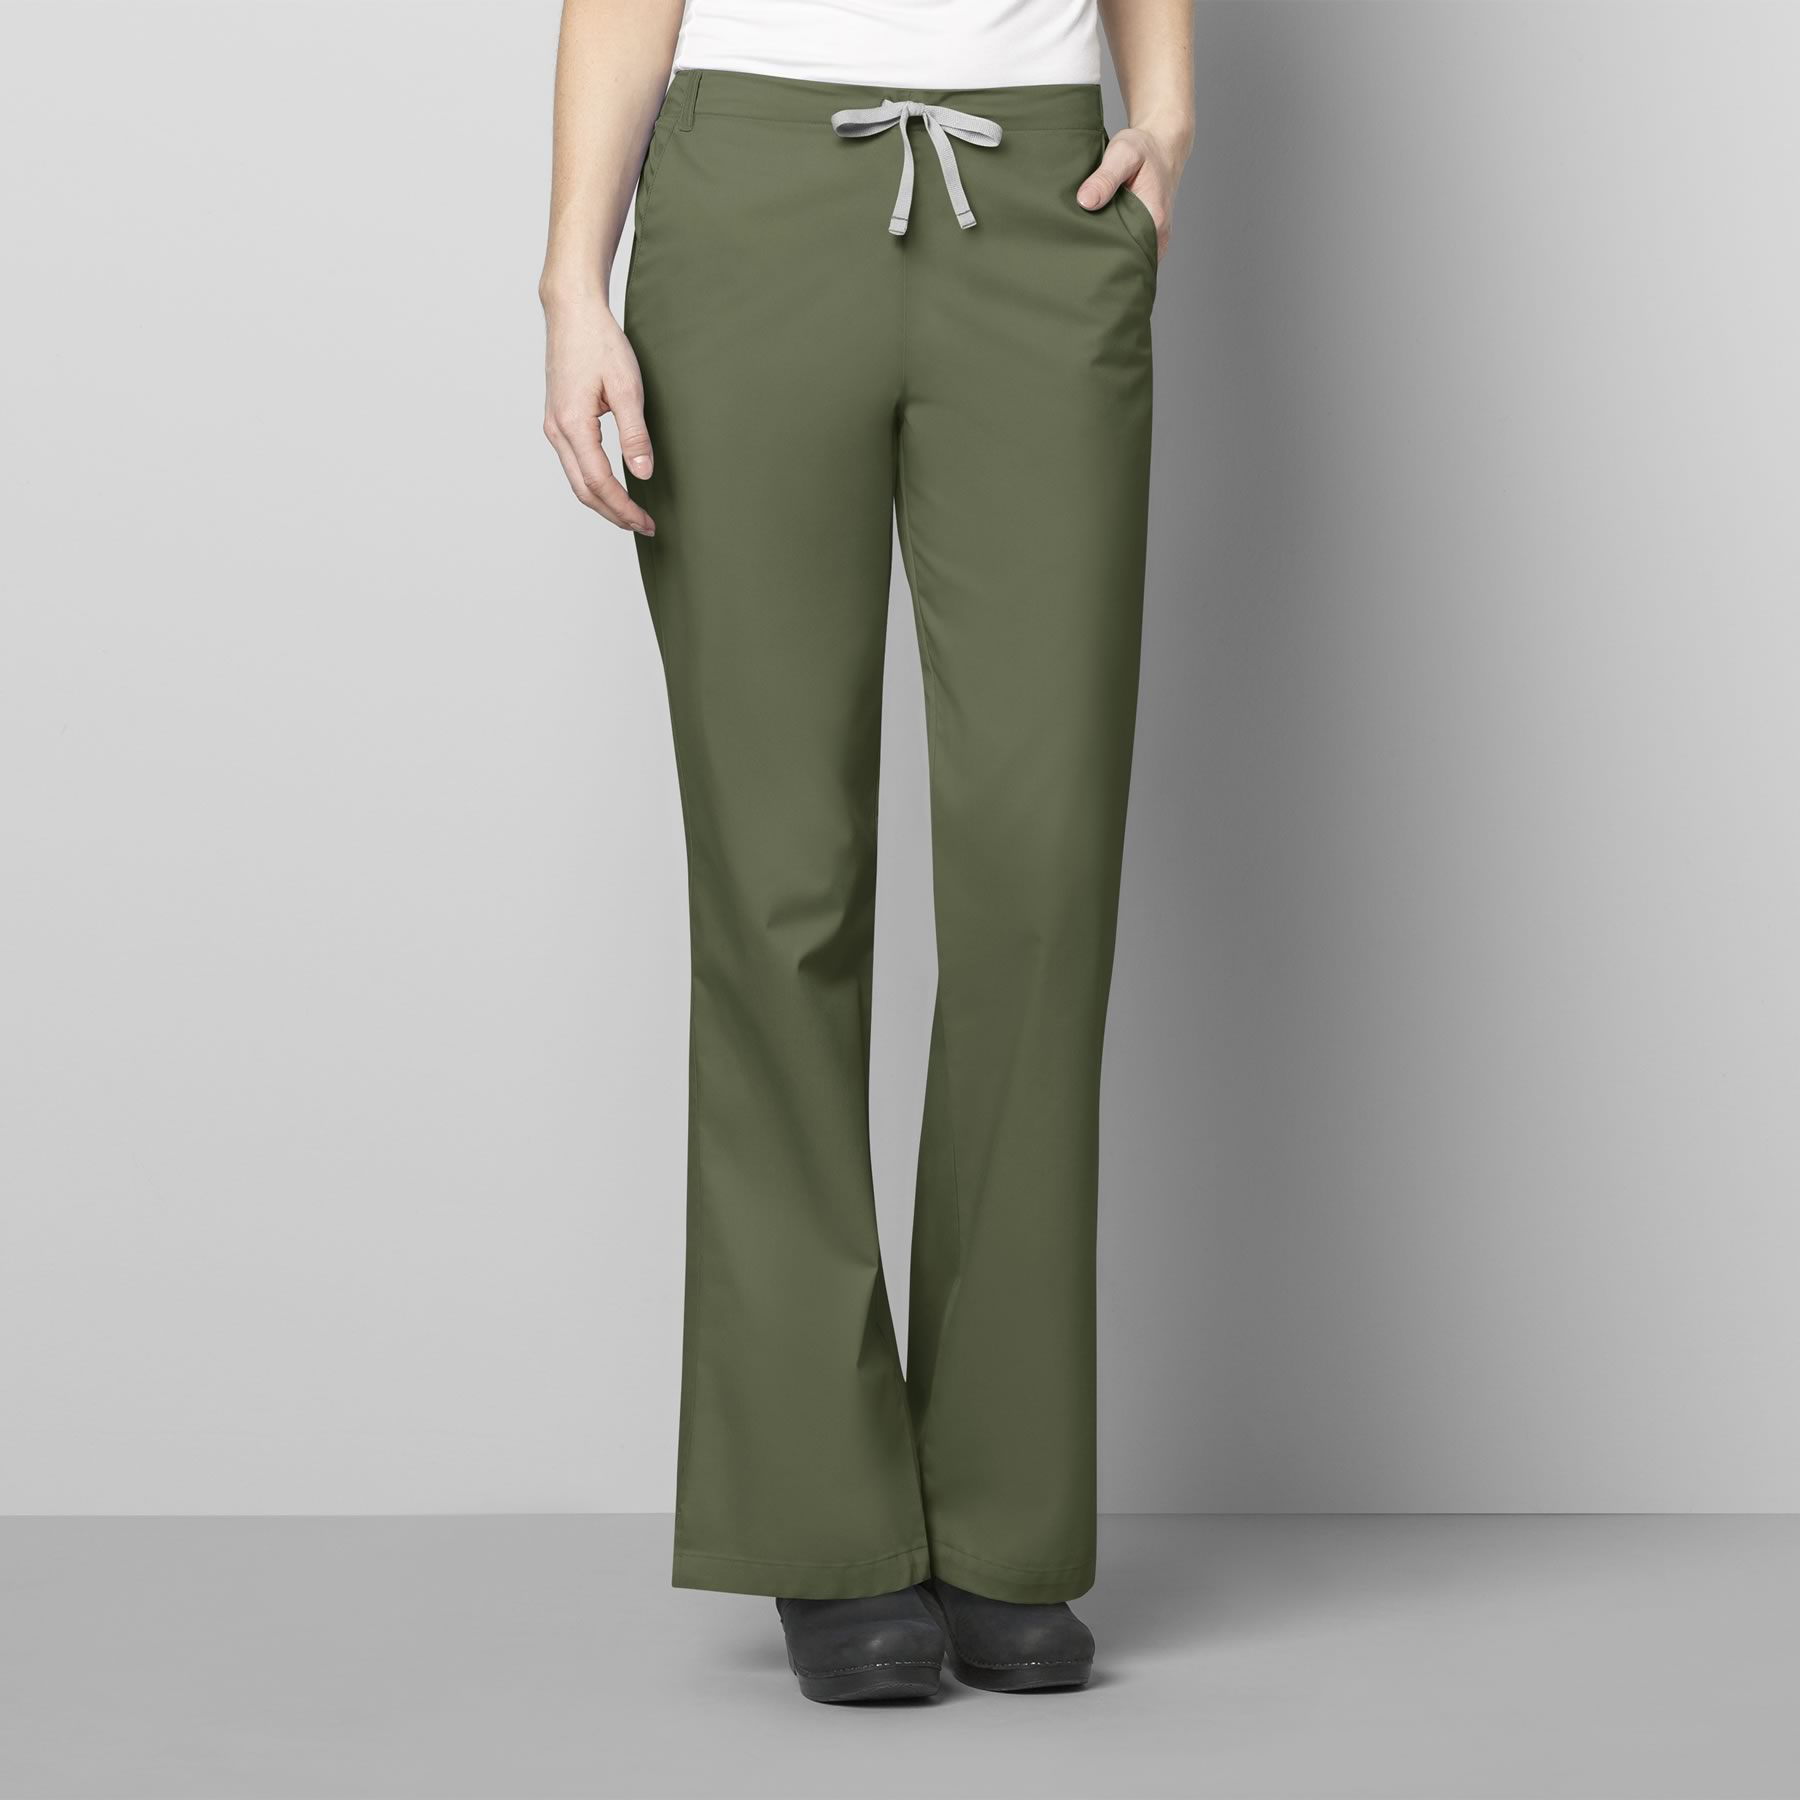 Cover Image For Surgical Technology Uniform Pants: Women's and Unisex